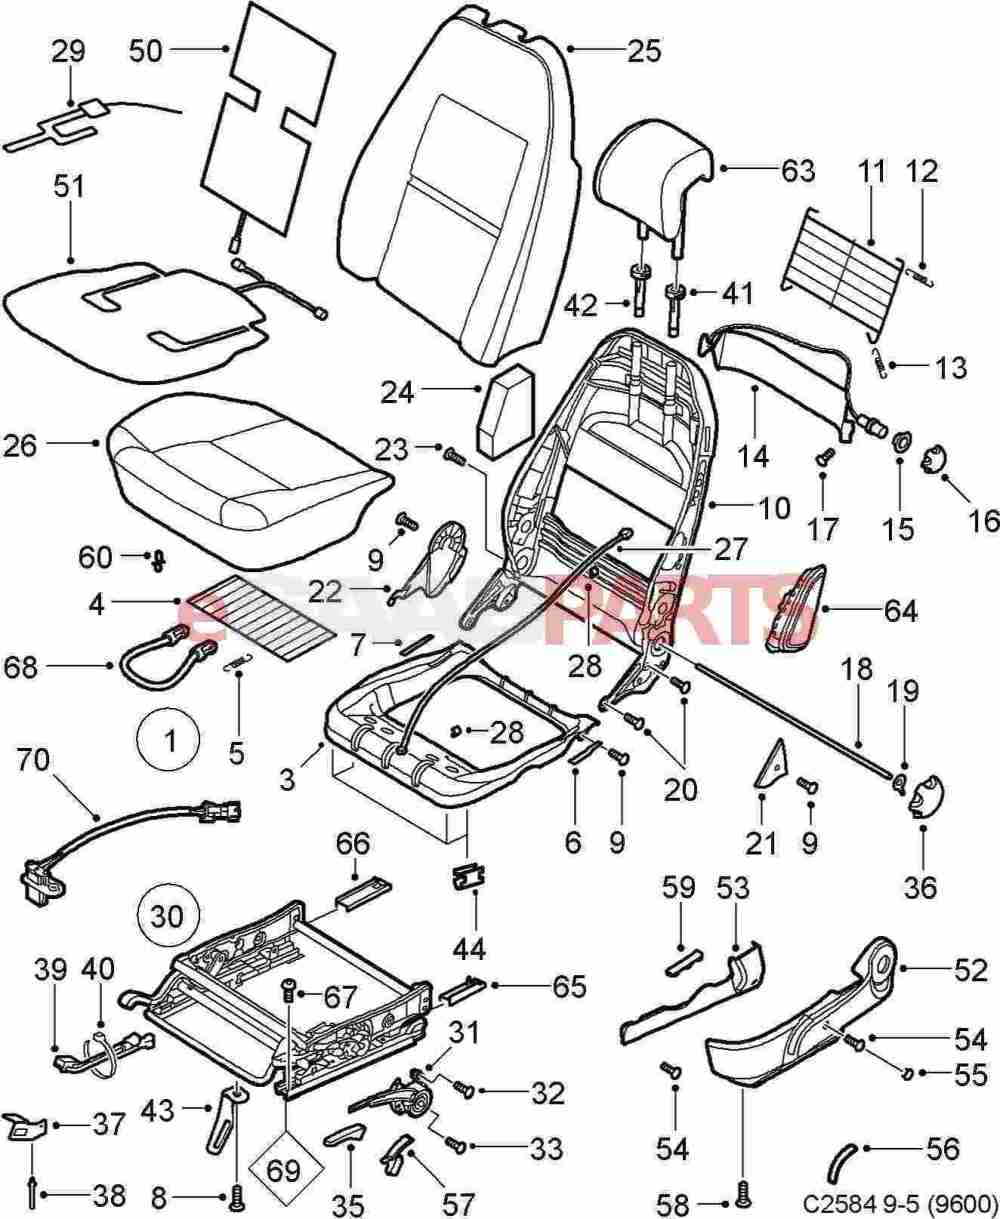 medium resolution of esaabparts com saab 9 5 9600 u003e car body internal parts u003e seat rh esaabparts com